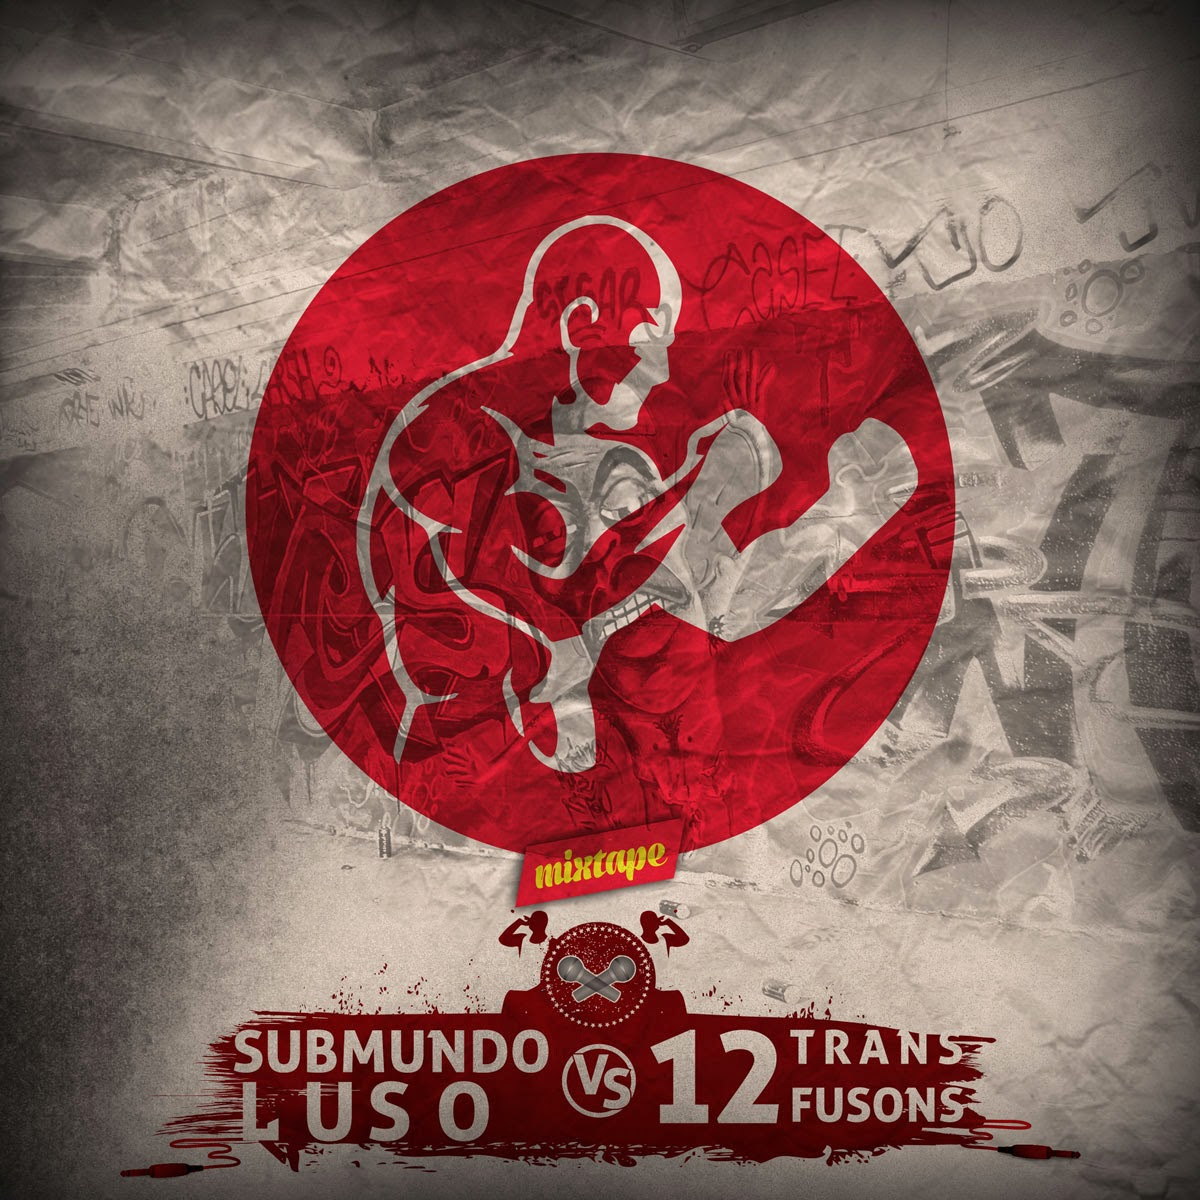 MIXTAPE SUBMUNDO LUSO vs 12TRANSFUSONS